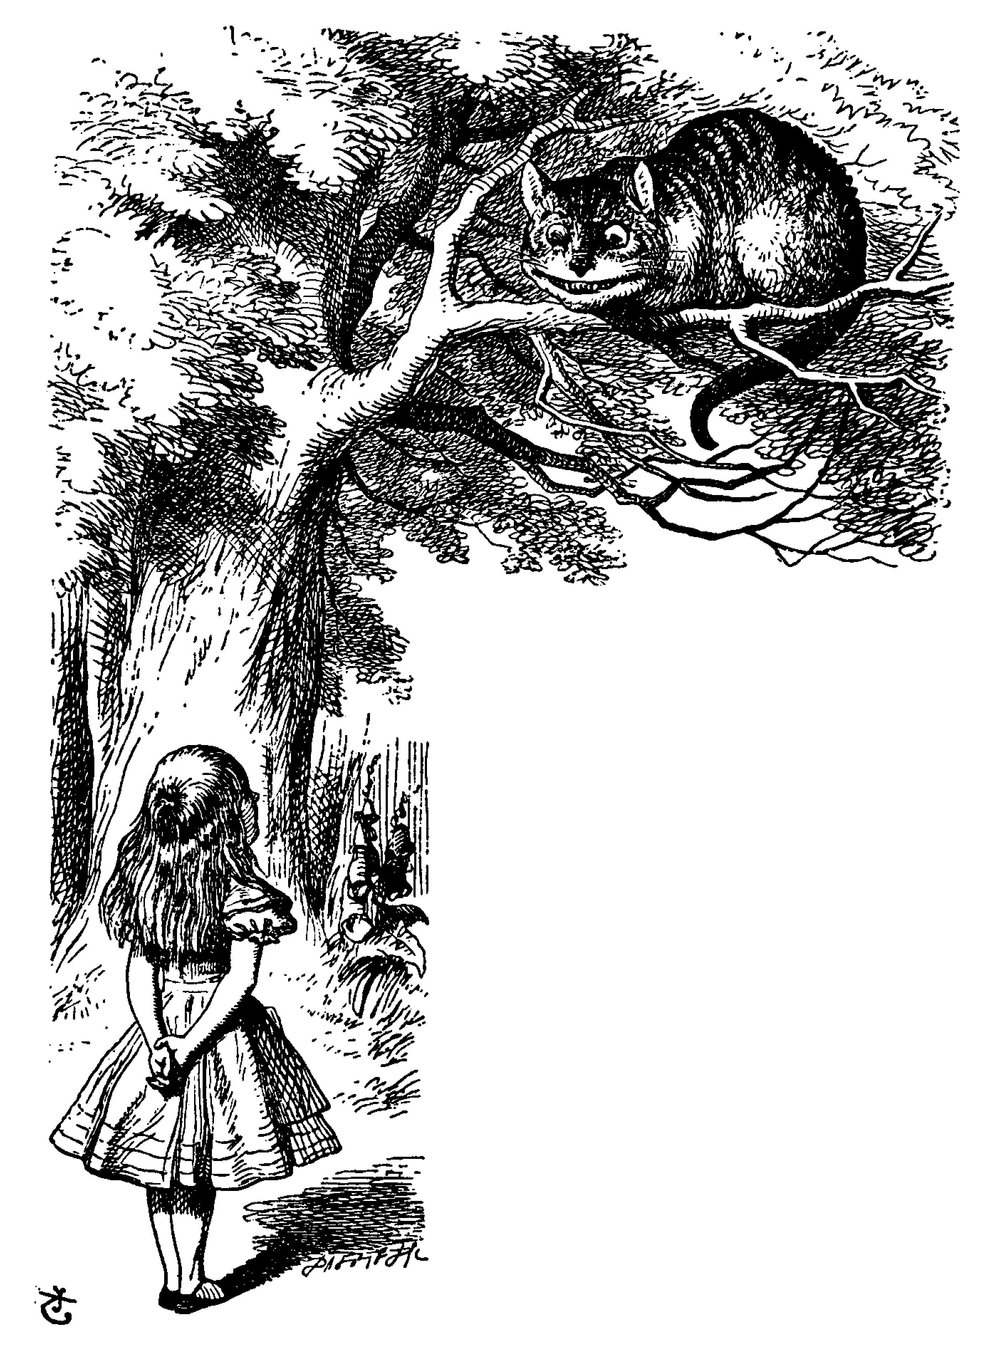 Illustration by John Tenniel from Alice's Adventures in Wonderland. Alice is pictures with her back towards the reader, looking up at the Cheshire cat who is perched high in a tree top, grinning.